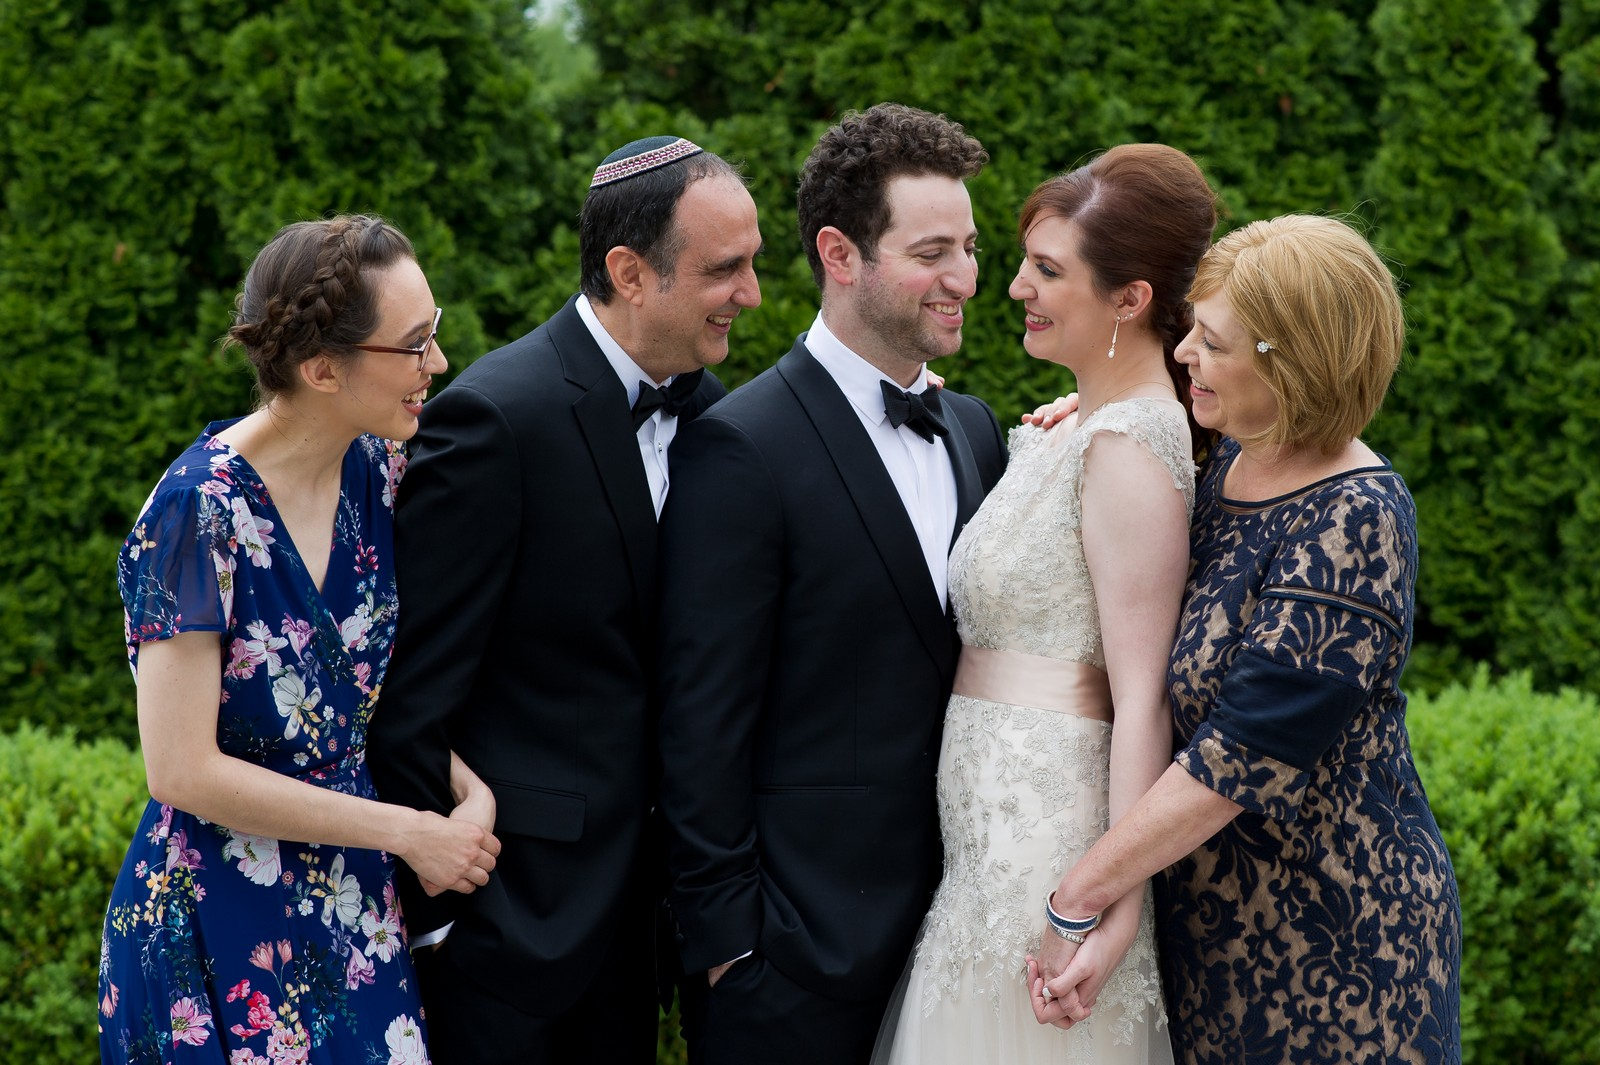 Yoey and Aaron's Memorial Day Modern Jewish Wedding at Anthony's Pier 9, New Windsor, NY Photos by Chaim Schvarcz bride family portraits